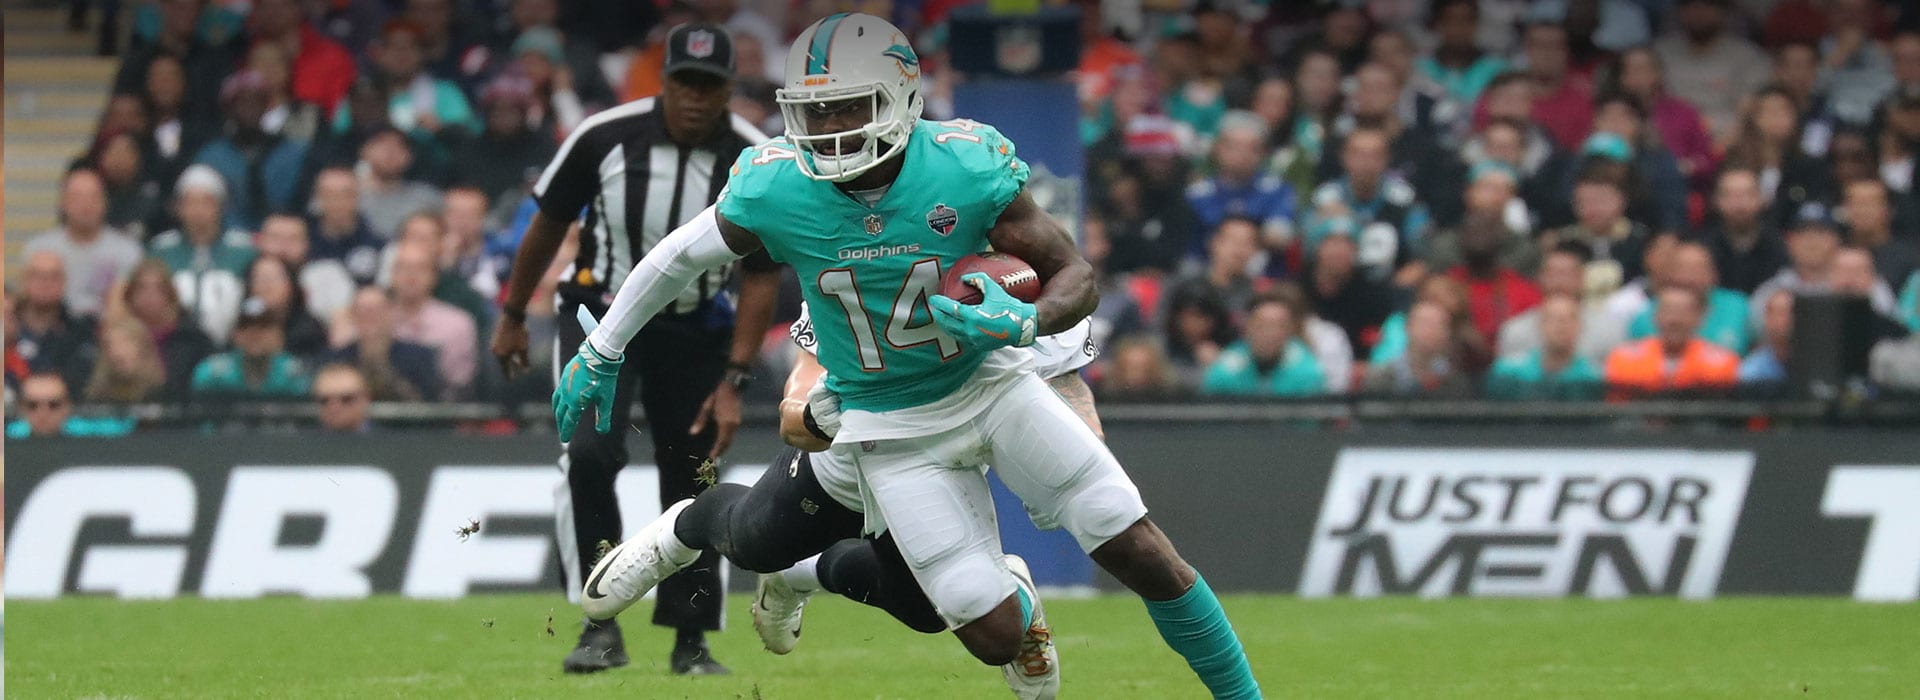 Miami Dolphin Football player carrying ball